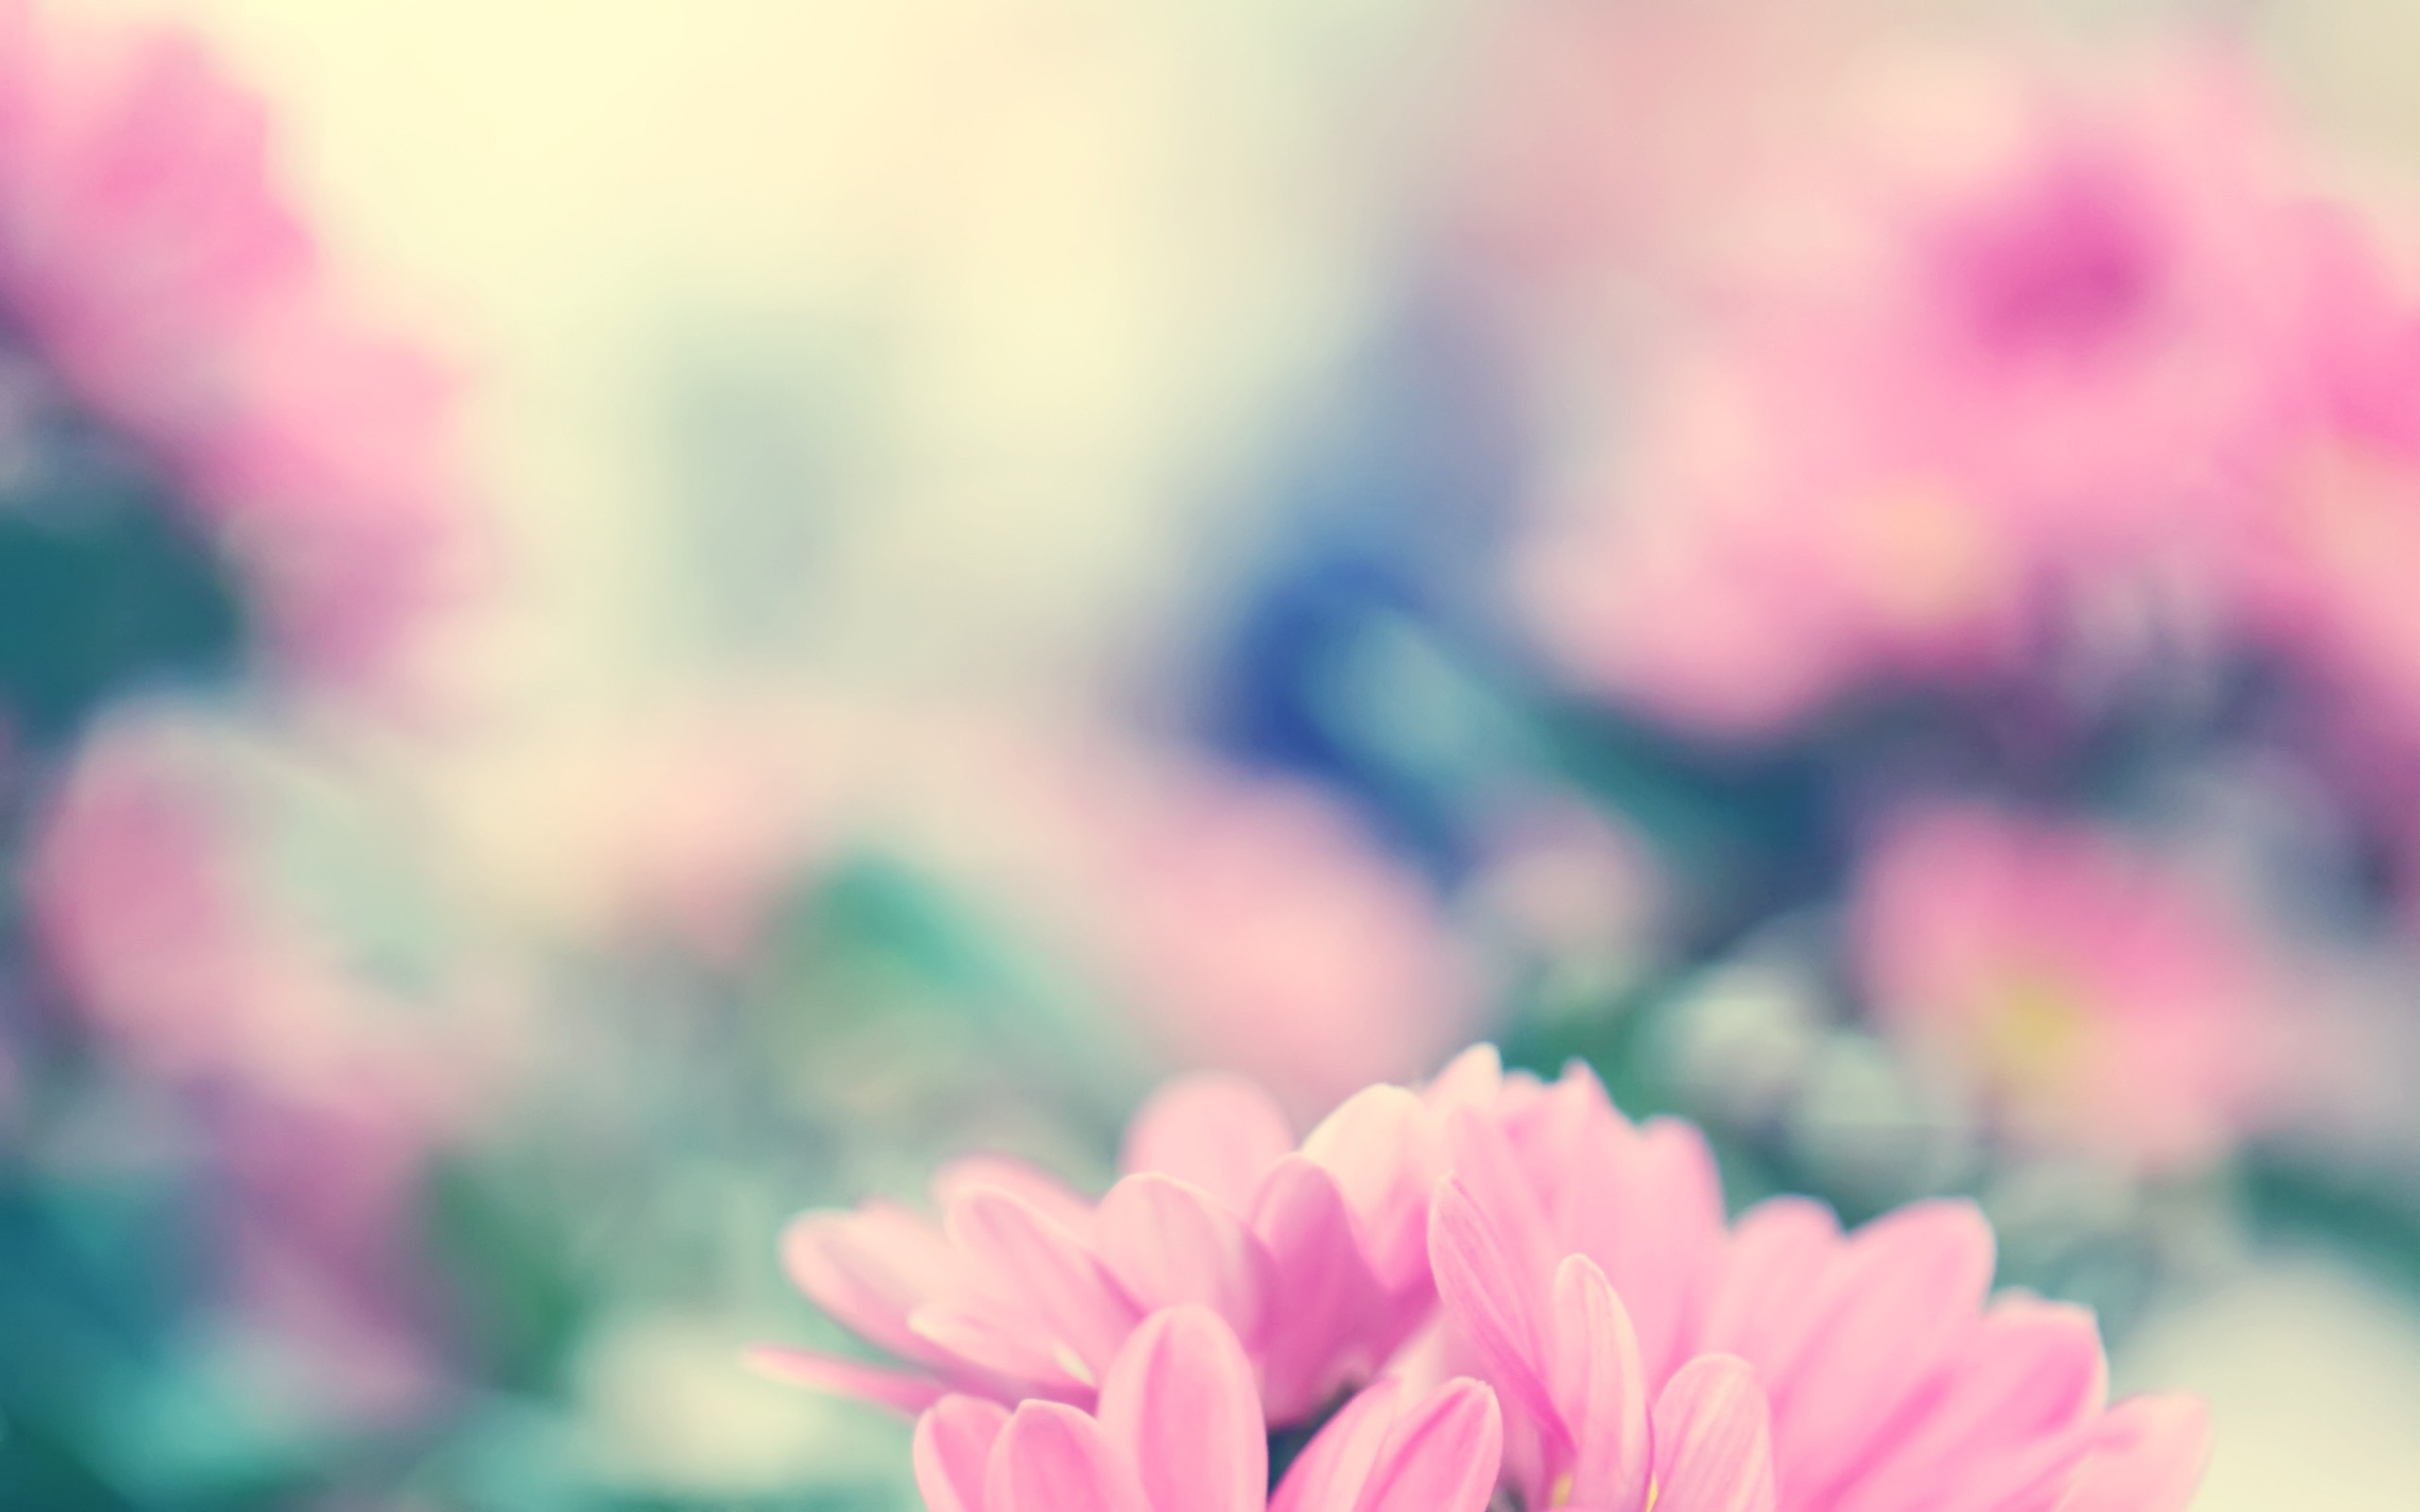 Wallpaper Wiki Spring Flowers Background Free Download Pic Wpb00461